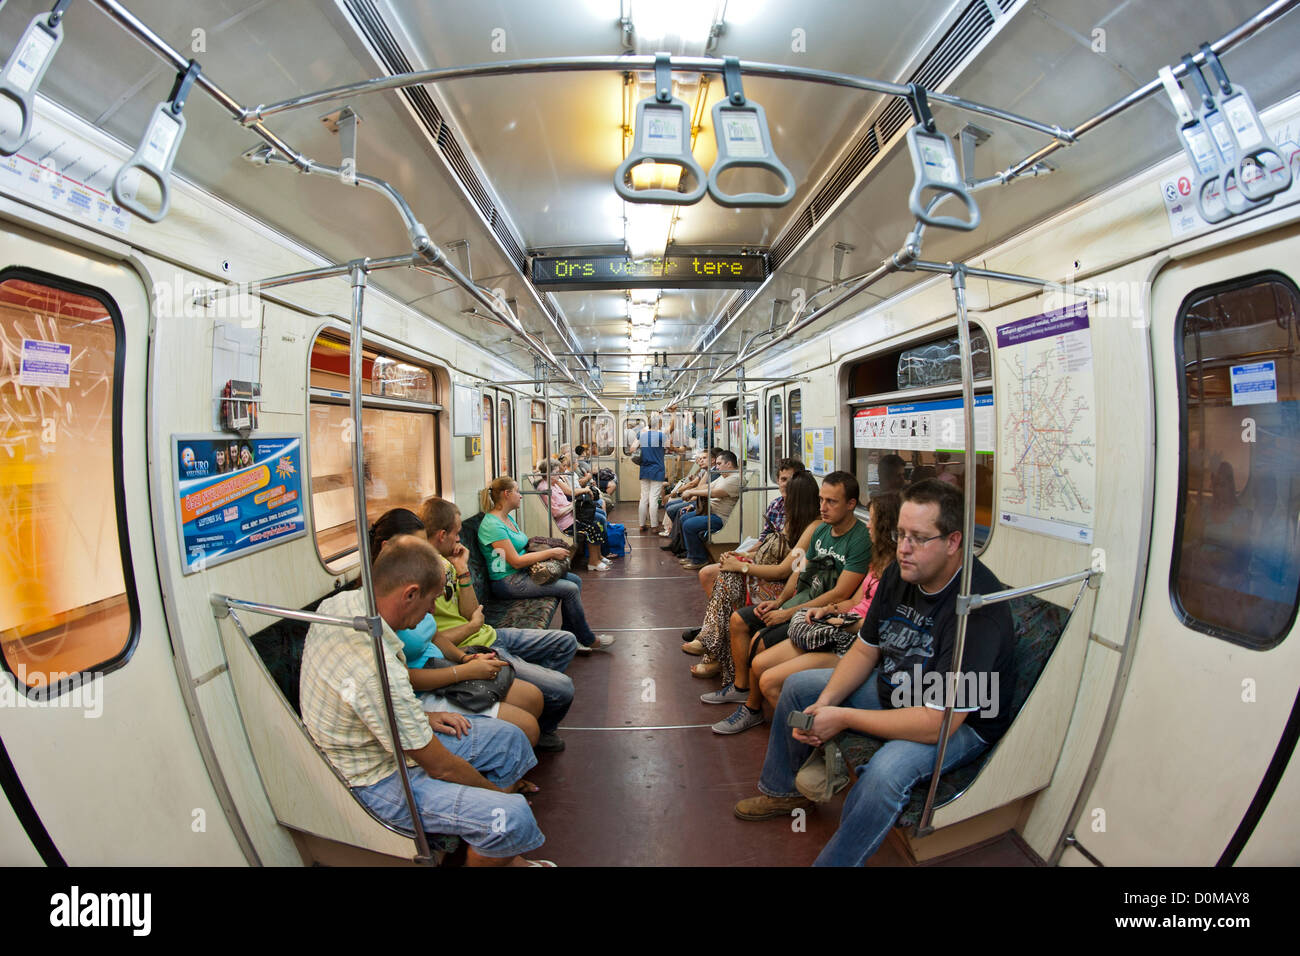 The metro in Budapest, the capital of Hungary. It is the third oldest underground system in the world. Stock Photo